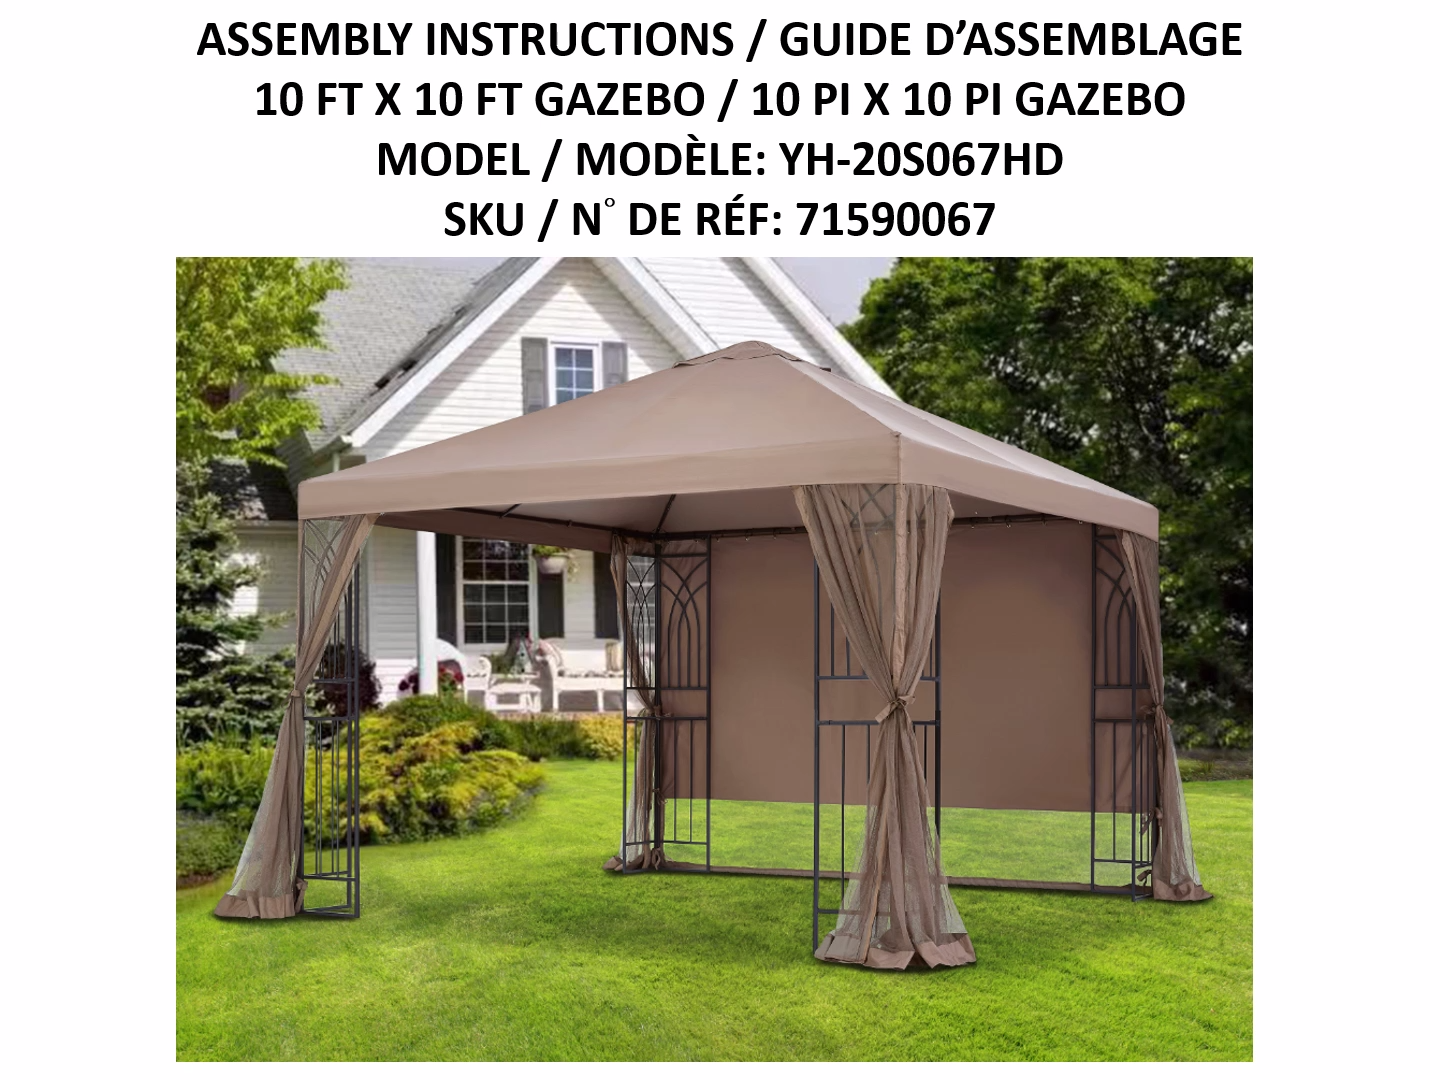 10 Ft X 10 Ft Gazebo Video In 2020 Gazebo Outdoor Structures Exterior